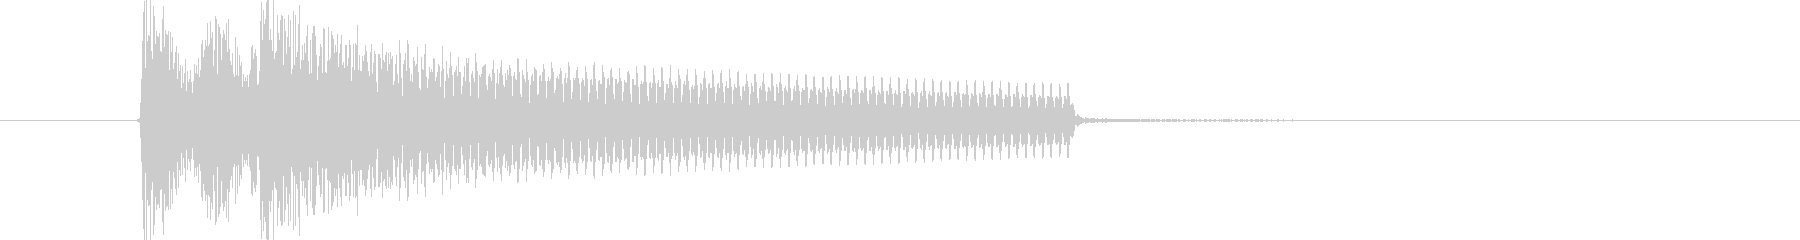 Impact piano sound's unreproduced waveform